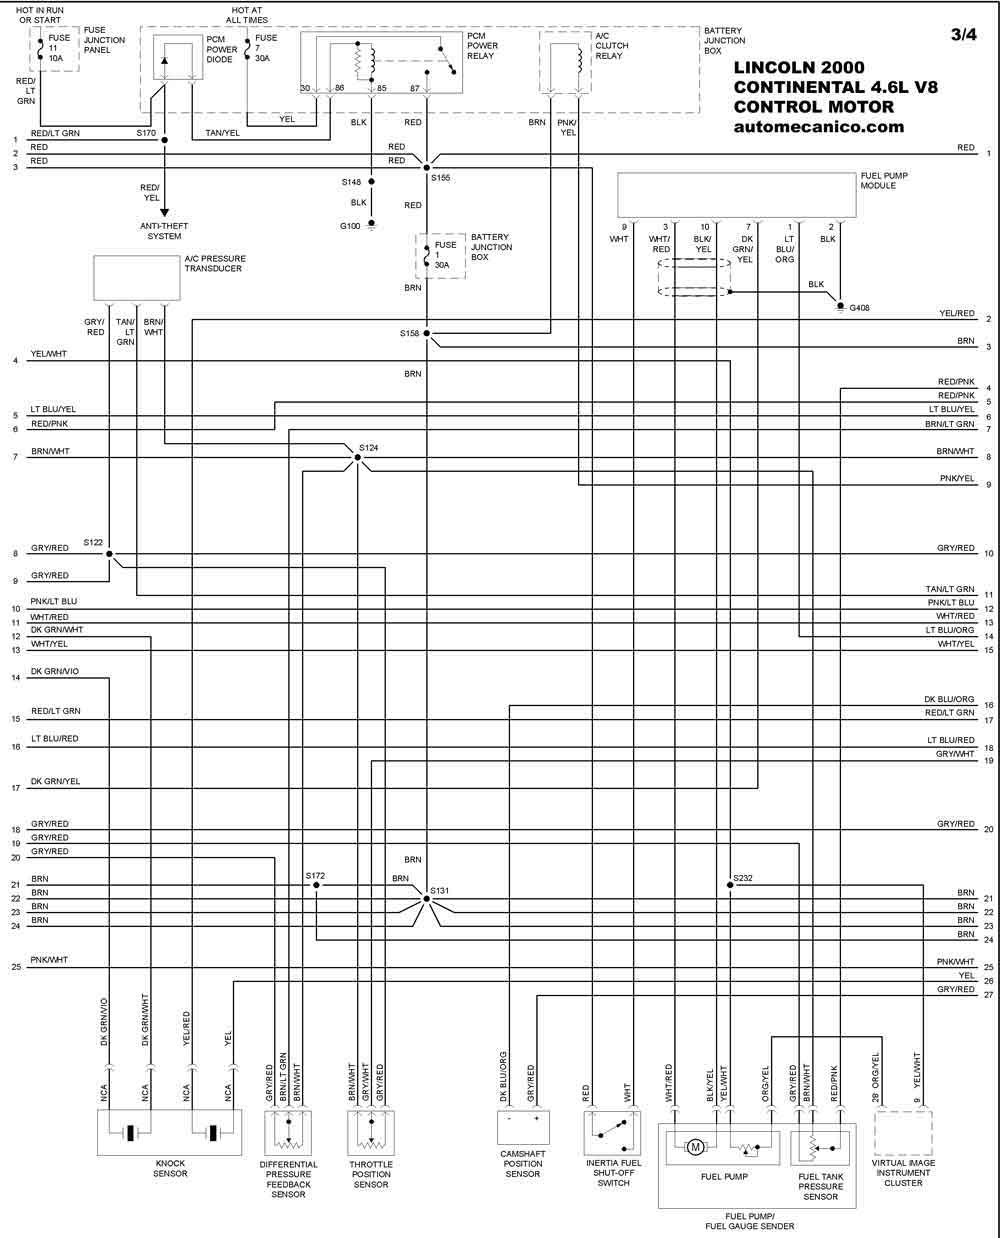 2000 lincoln continental Diagrama del motor